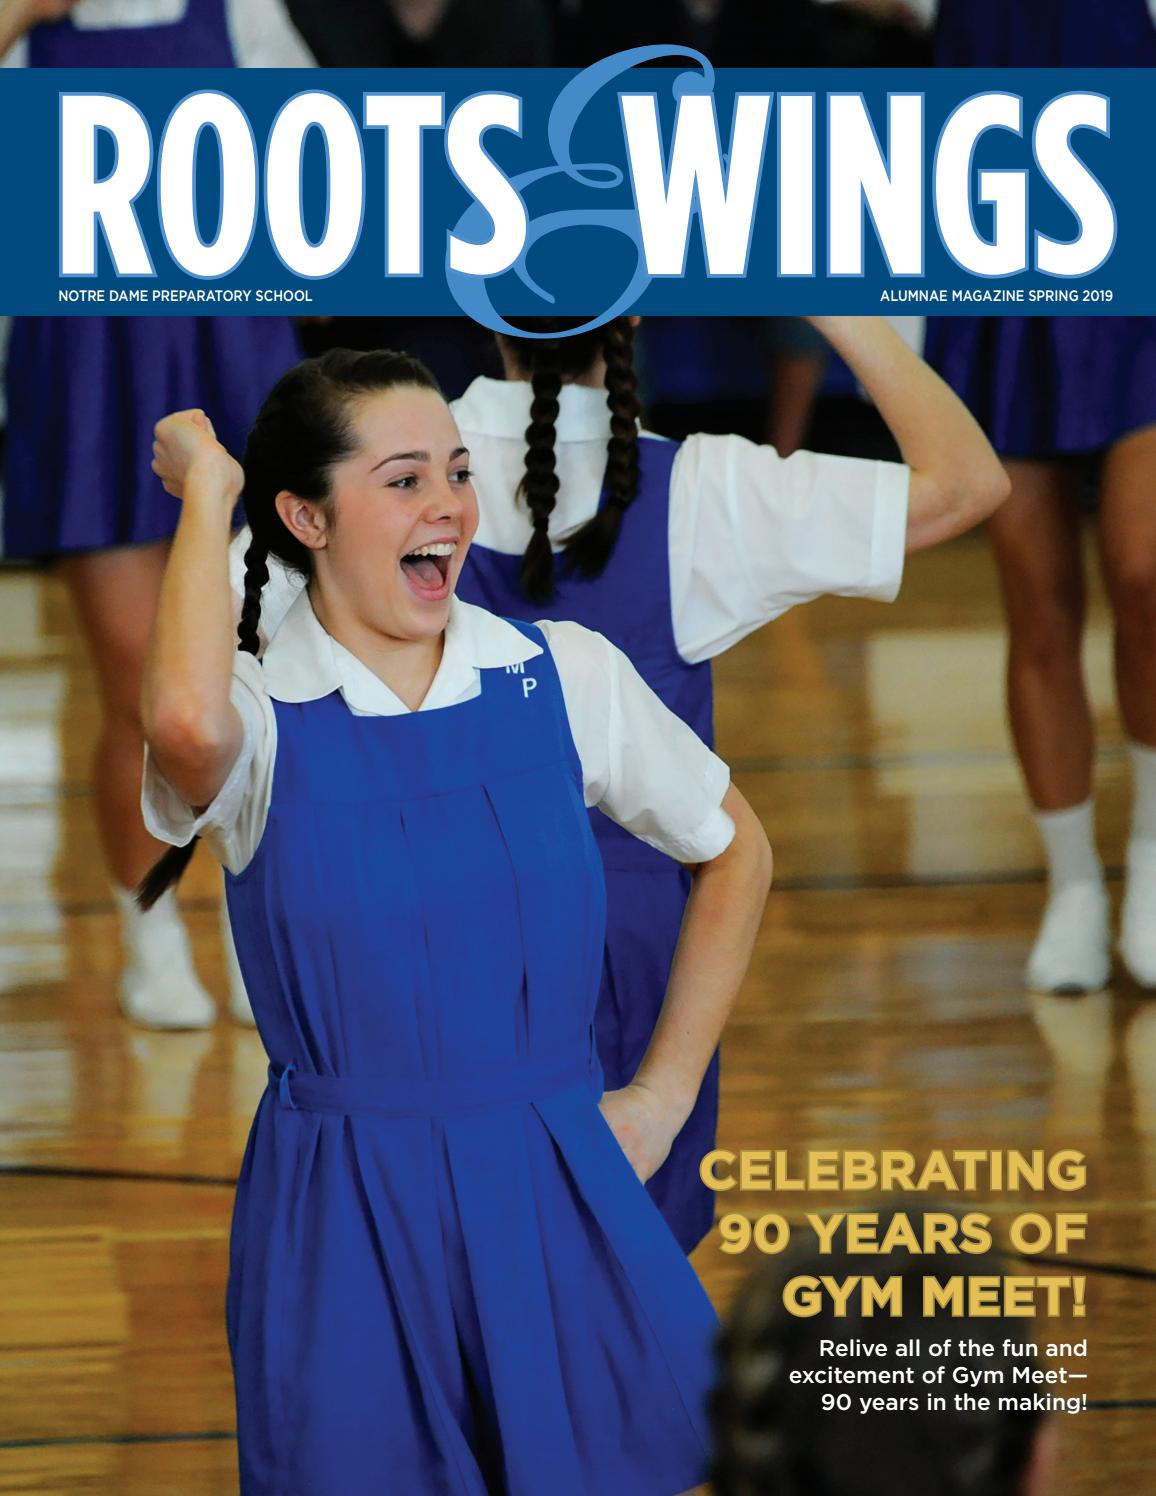 Roots & Wings: Notre Dame Preparatory School's Alumnae Magazine